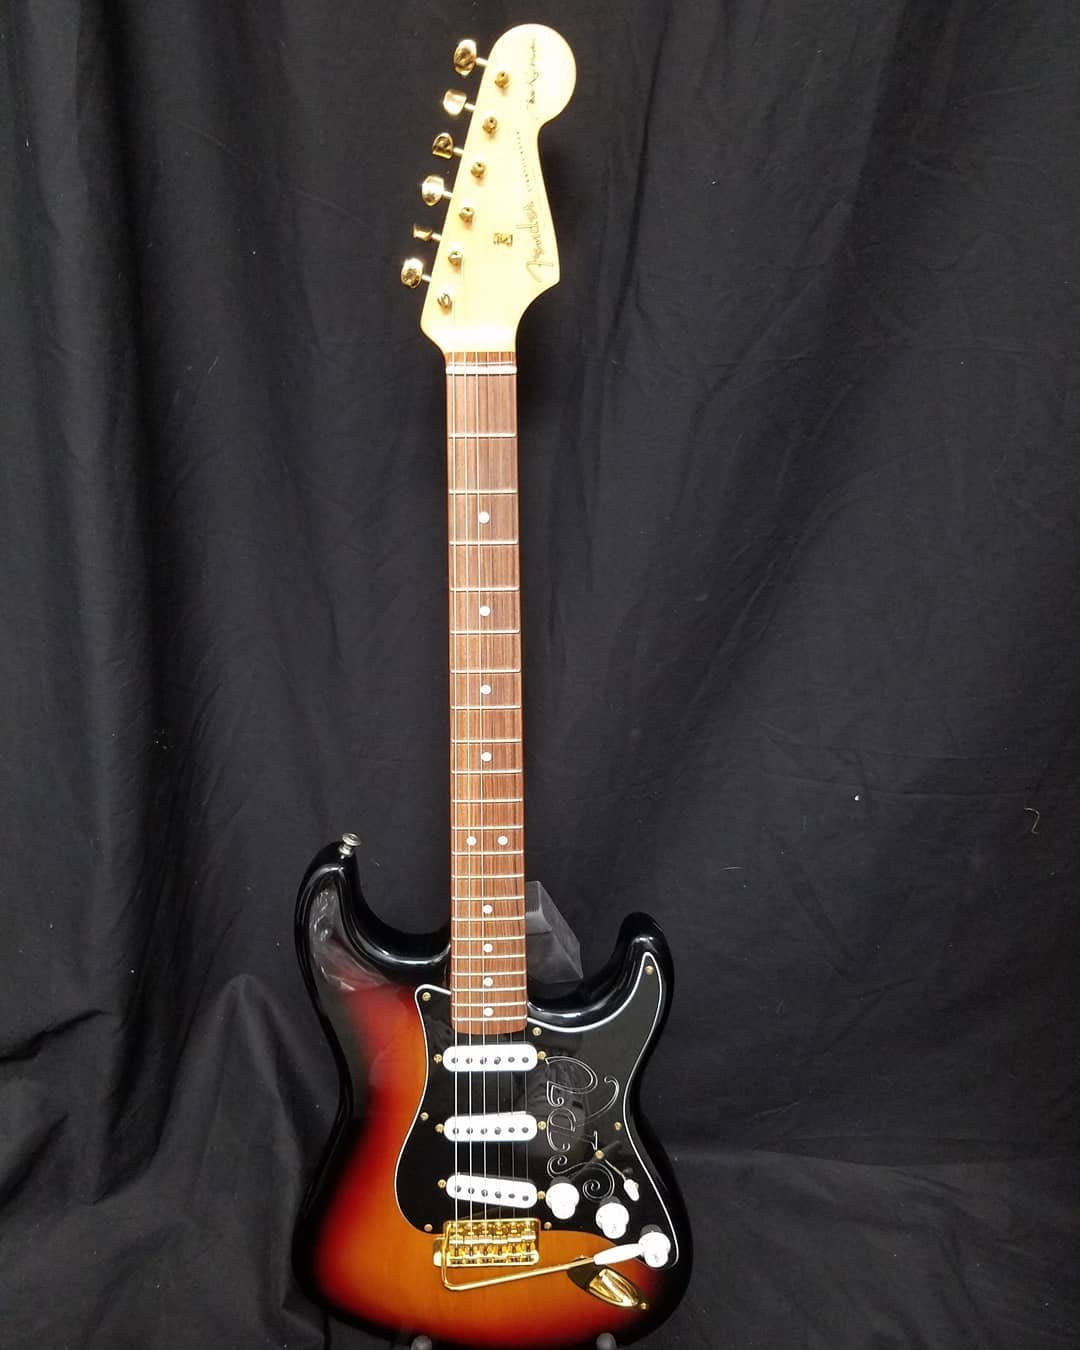 Used (Consignment) Fender SRV Signature Strat (Early 2000's)